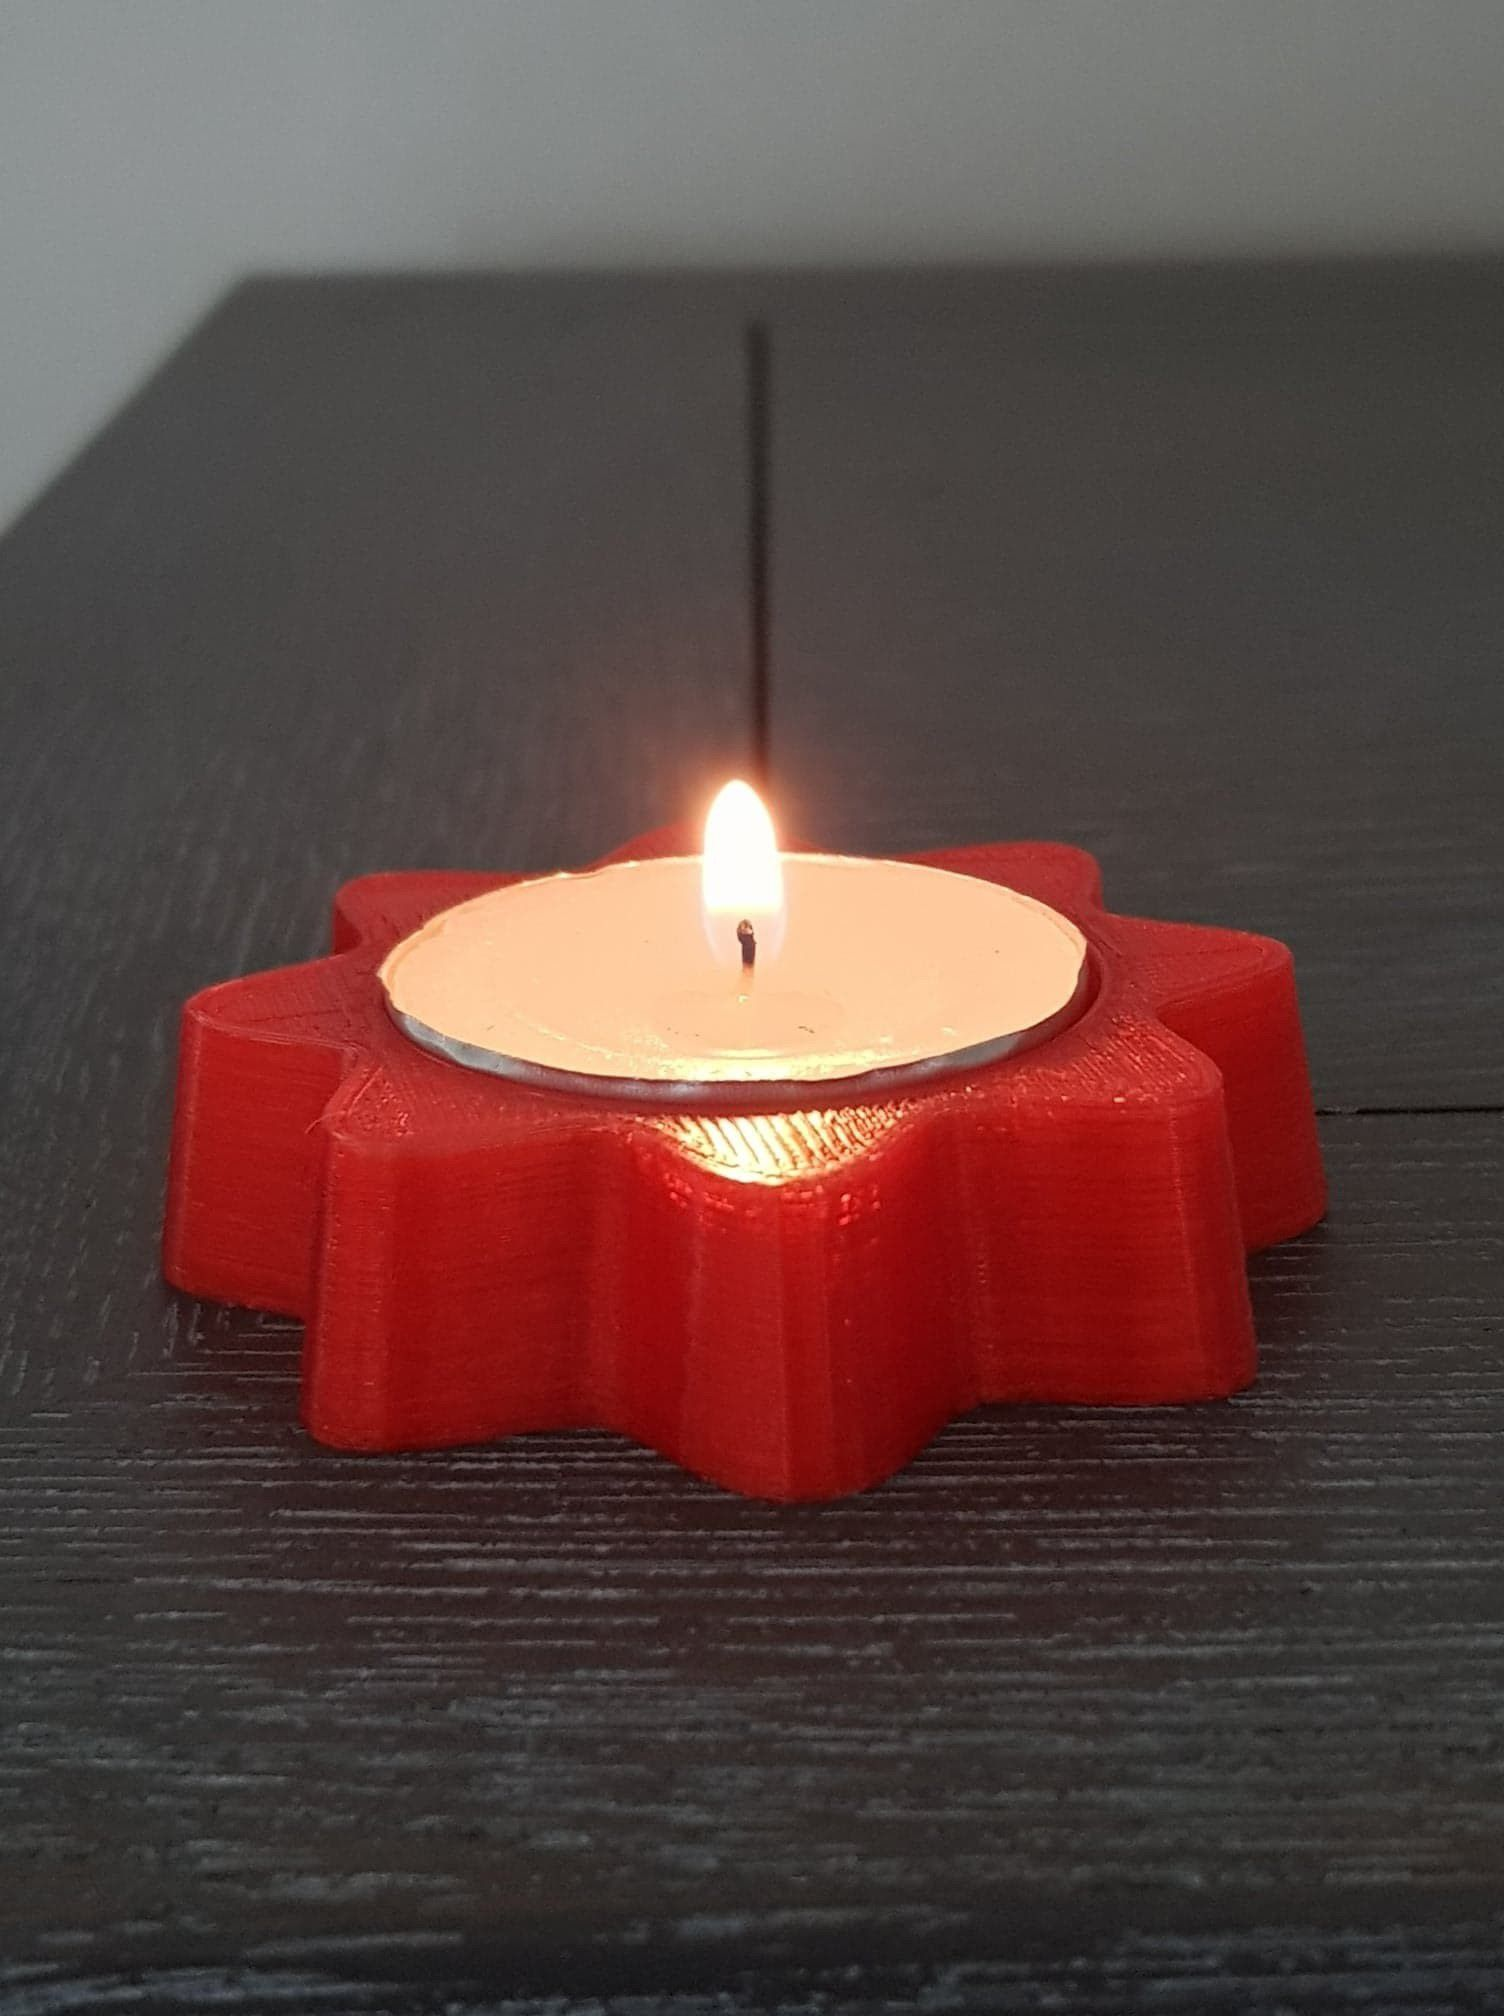 56260439_1175883109284800_1186178802179375104_n.jpg Download free STL file candlesticks • Object to 3D print, patfolle